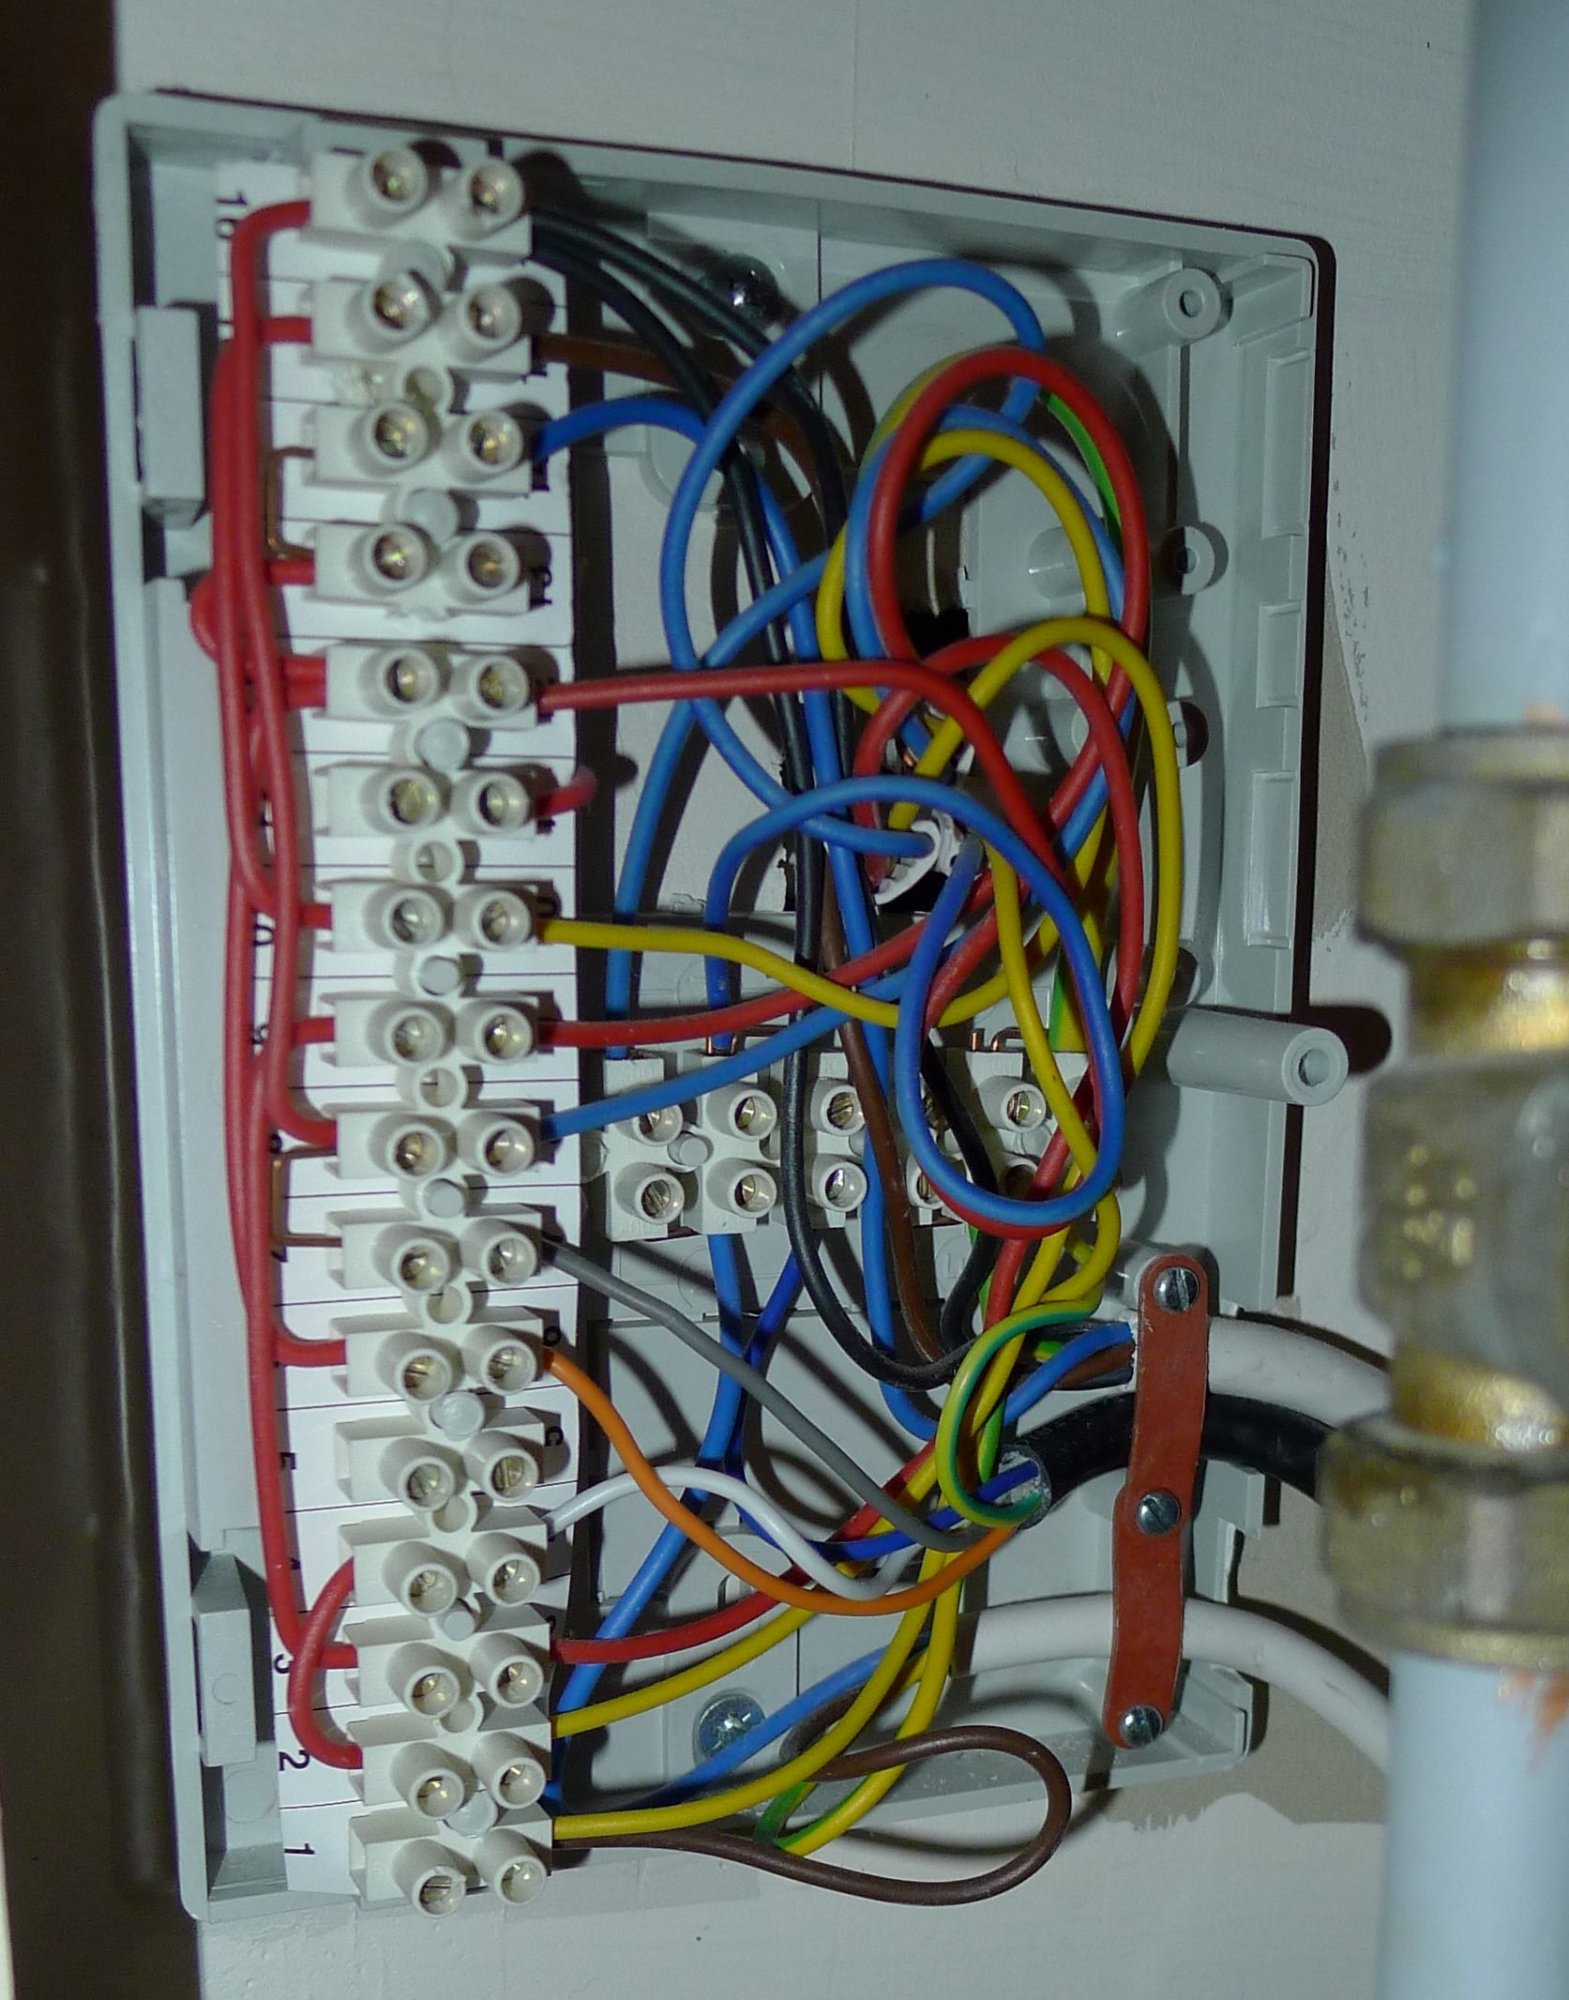 Fault Finding Central Heating Wiring Diynot Forums